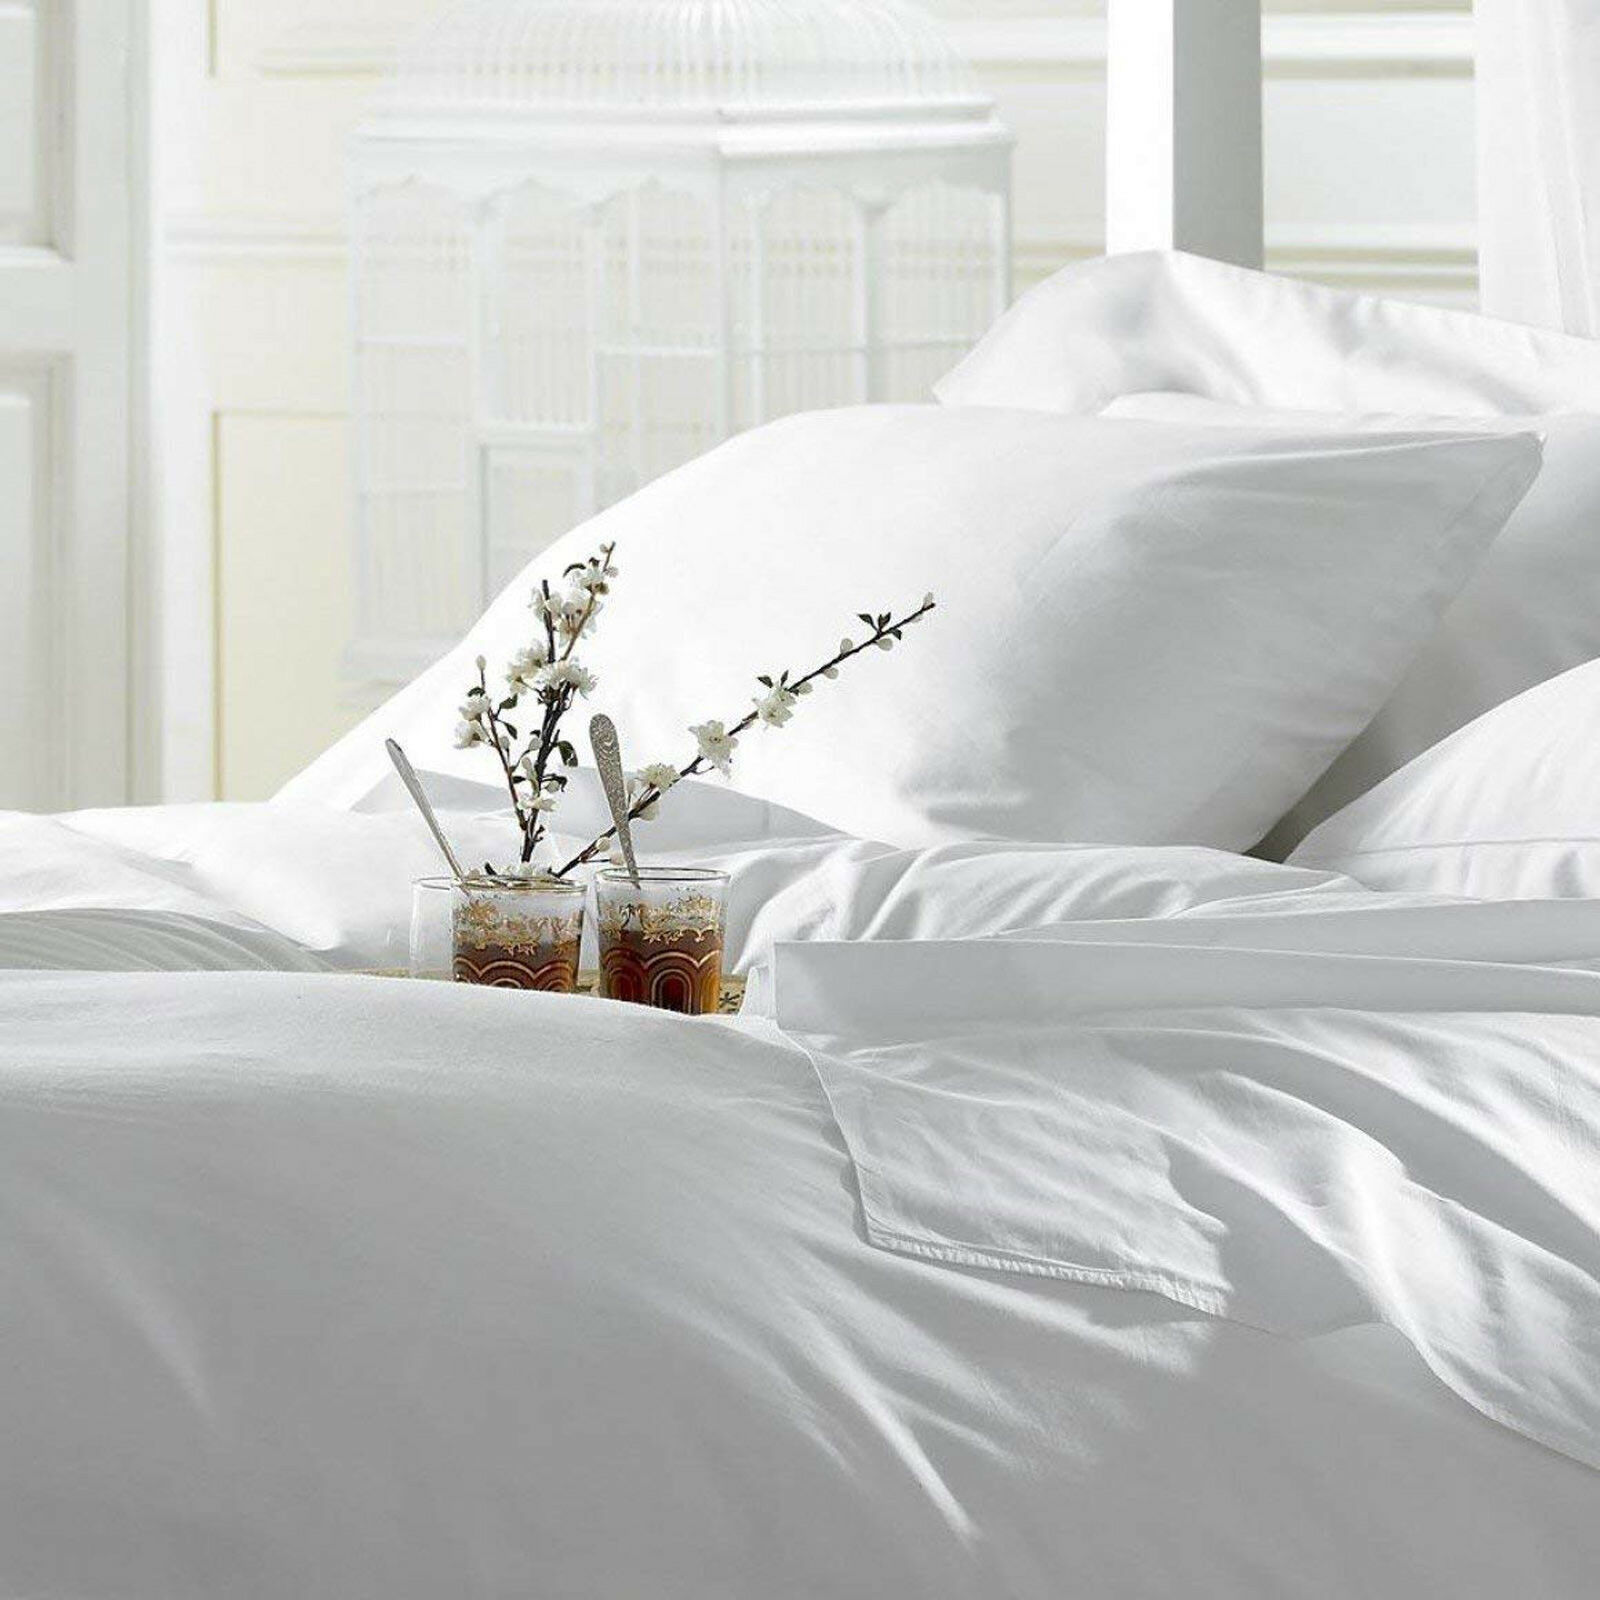 1800 Thread Count Fitted Bed Sheets Ultra Soft & Strong Wrinkle Resistant 2Size